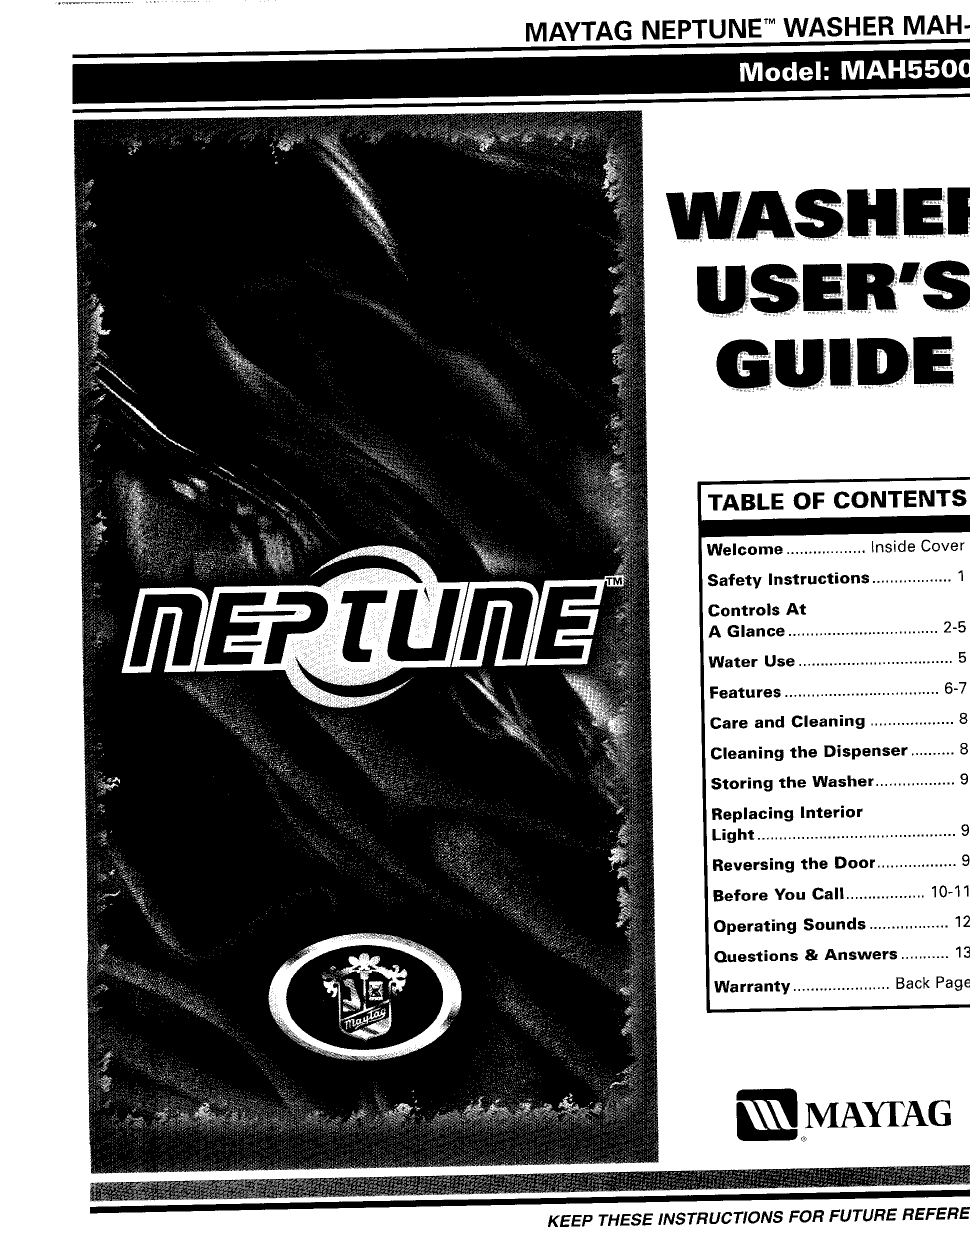 maytag neptune mah550 user s manual free pdf download 17 pages rh manualagent com maytag neptune front load washer user guide maytag neptune user manual pdf